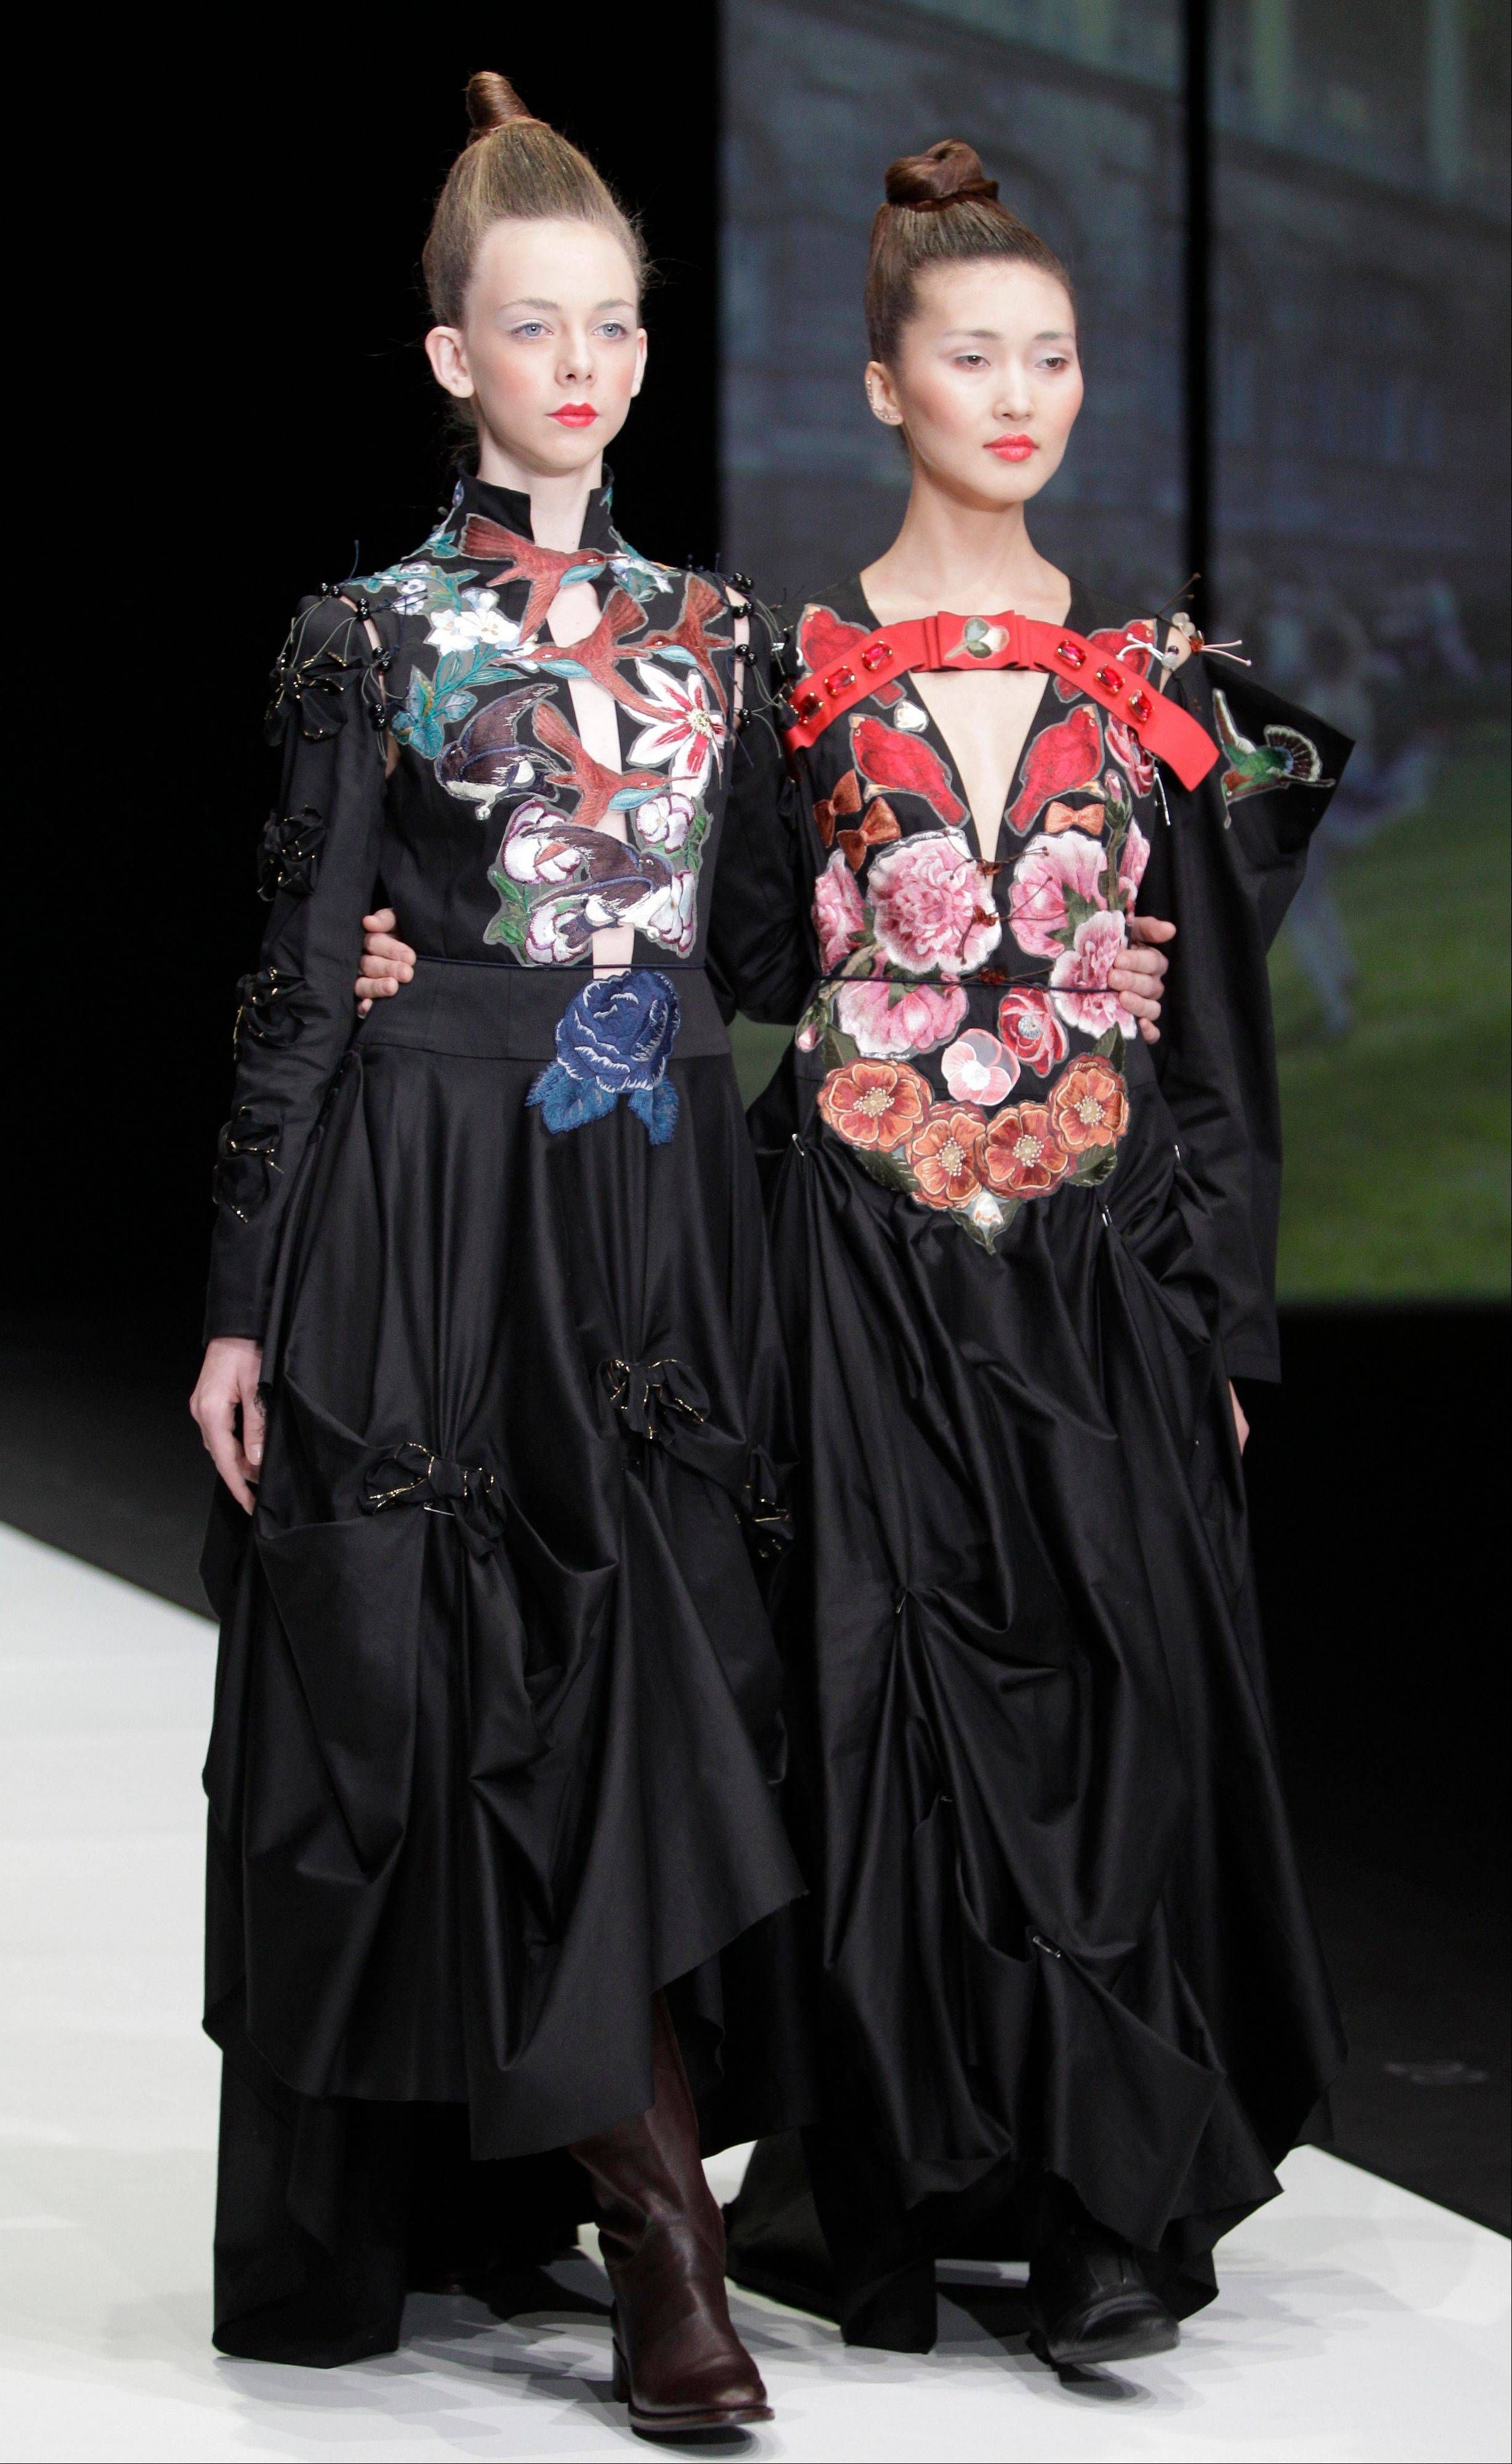 Models display creations by Russian designer Tatiana Parfionova for her Spring-Summer 2012 collection during Fashion Week in Moscow, Russia, Monday, Oct. 24, 2011.